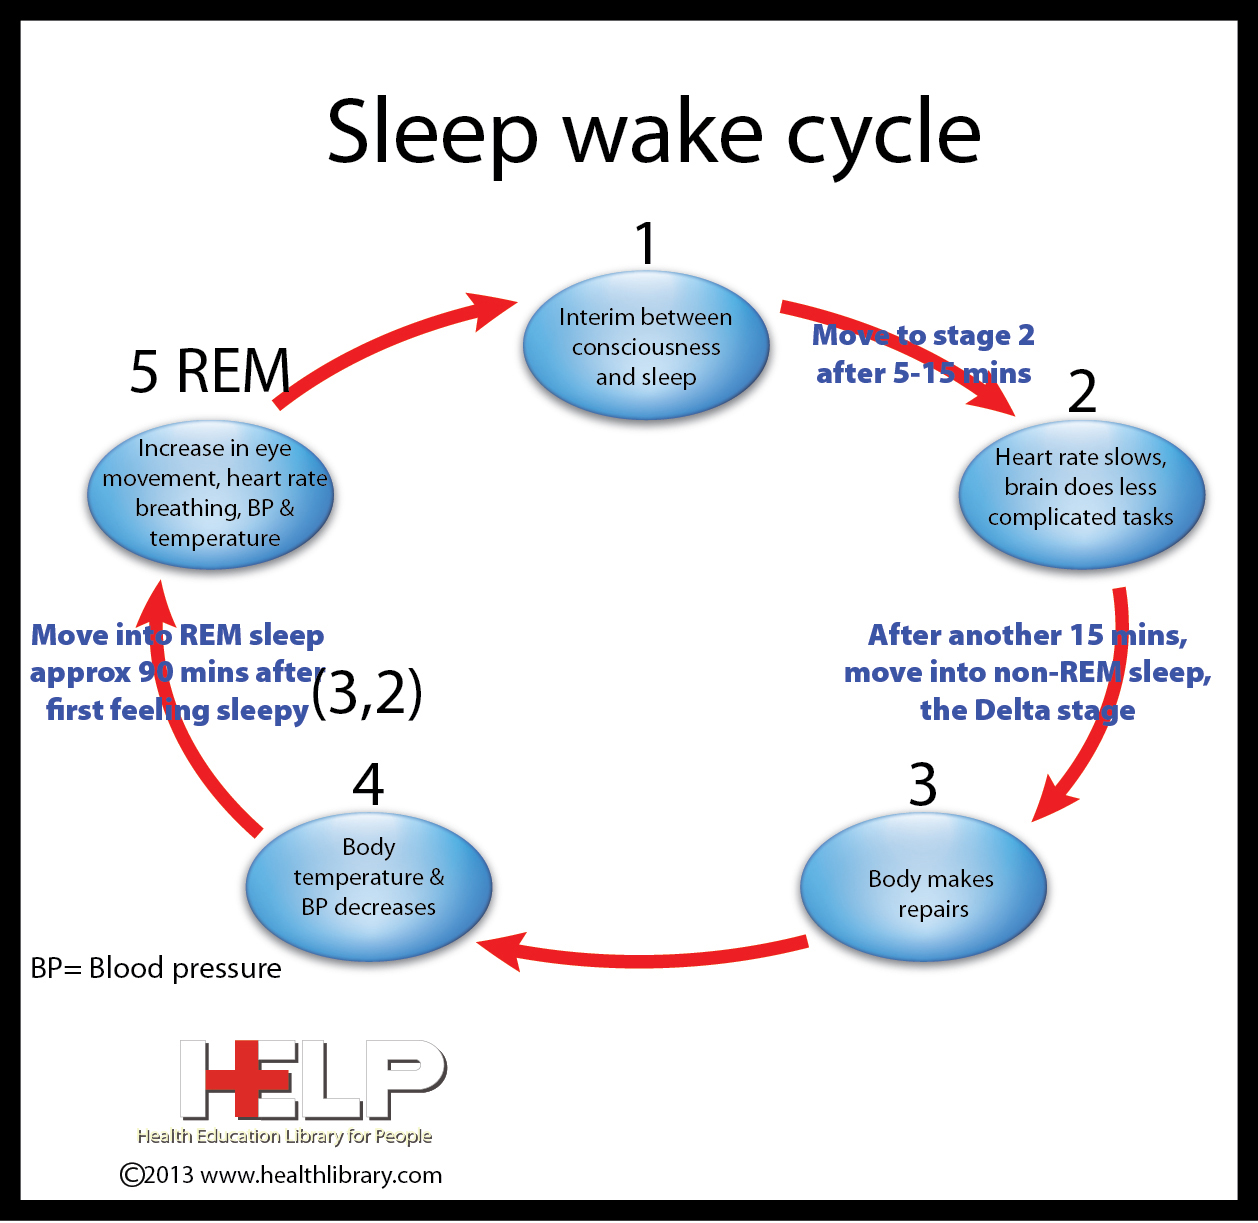 1998 as cited in sleep deprivation were going into rem sleep in an average of only 34 minutes which is similar to patients with narcolepsy